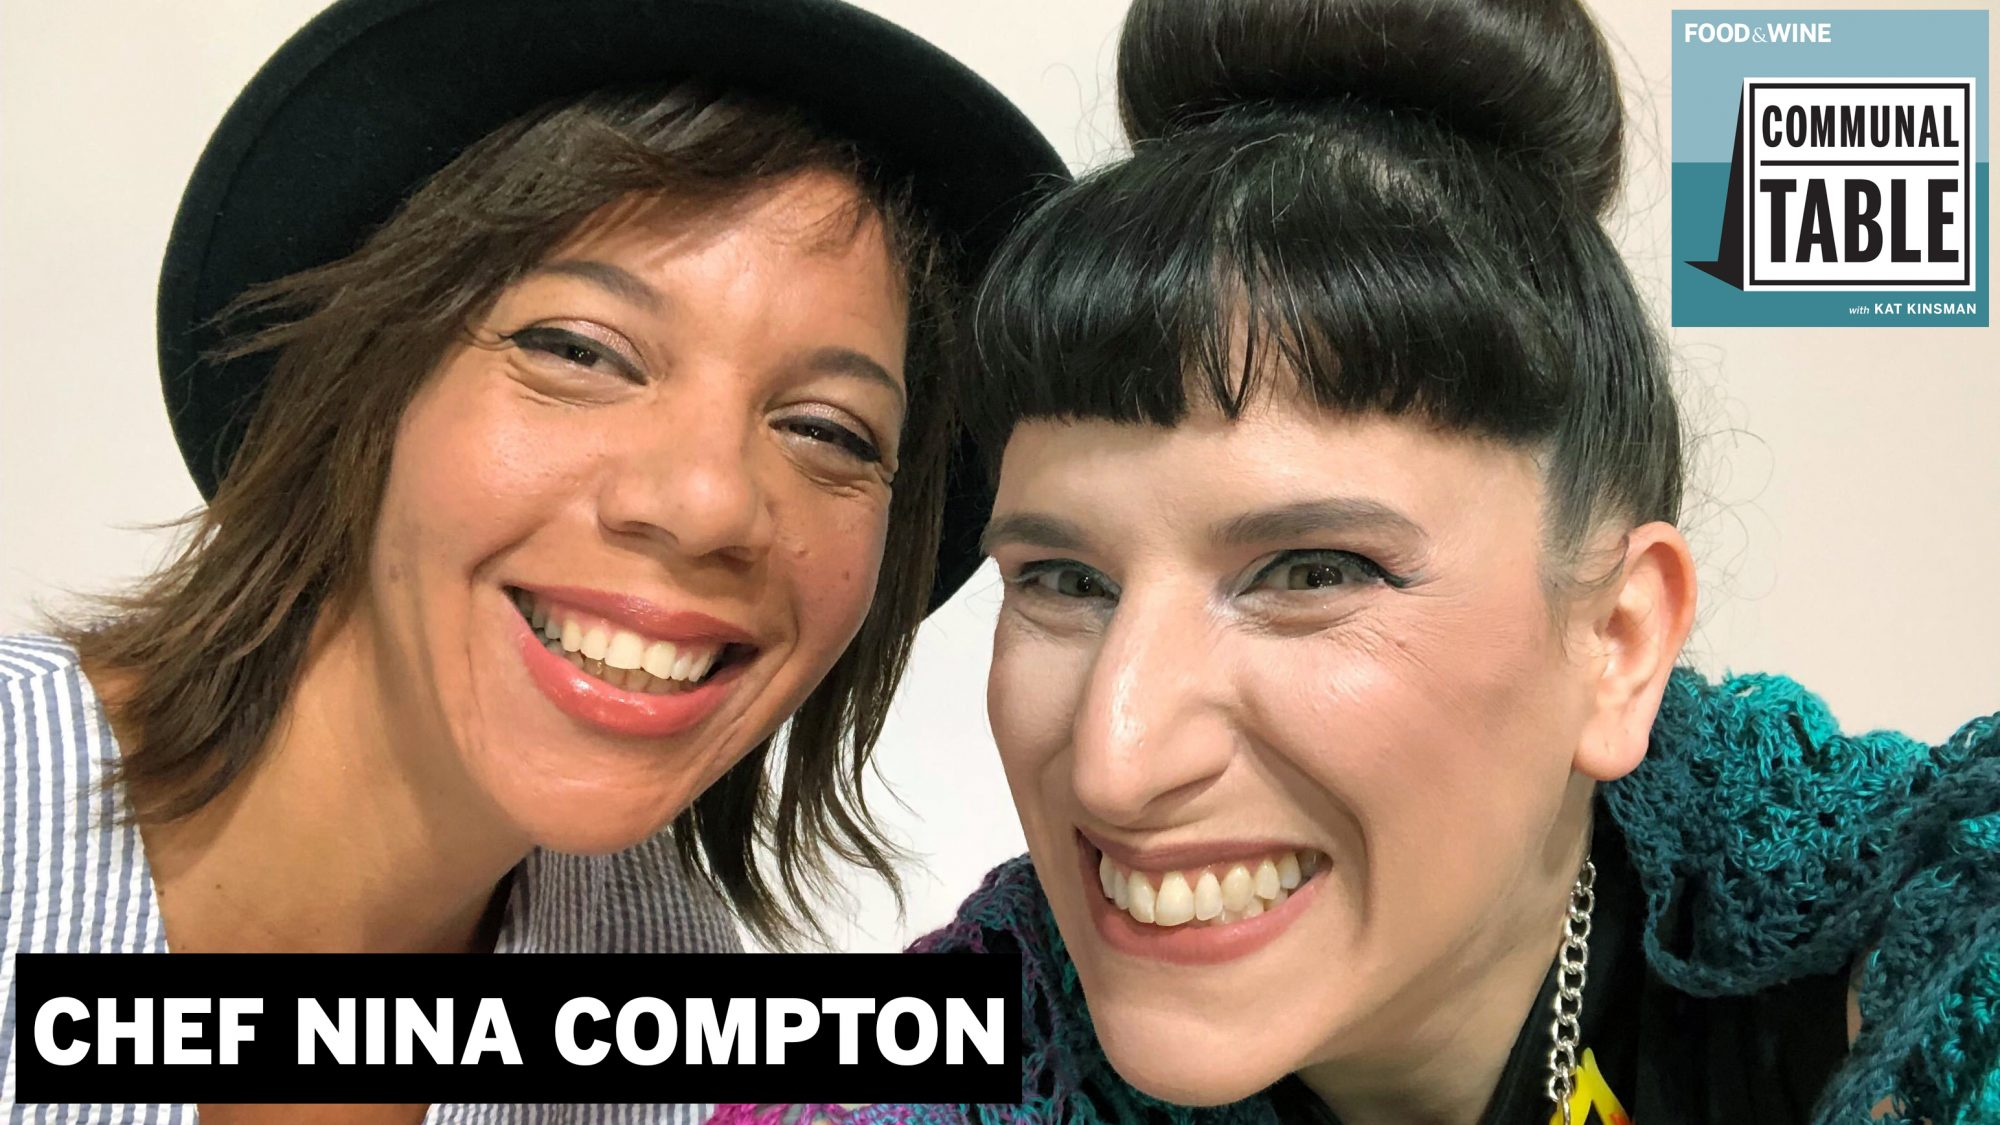 Communal Table Podcast: Nina Compton